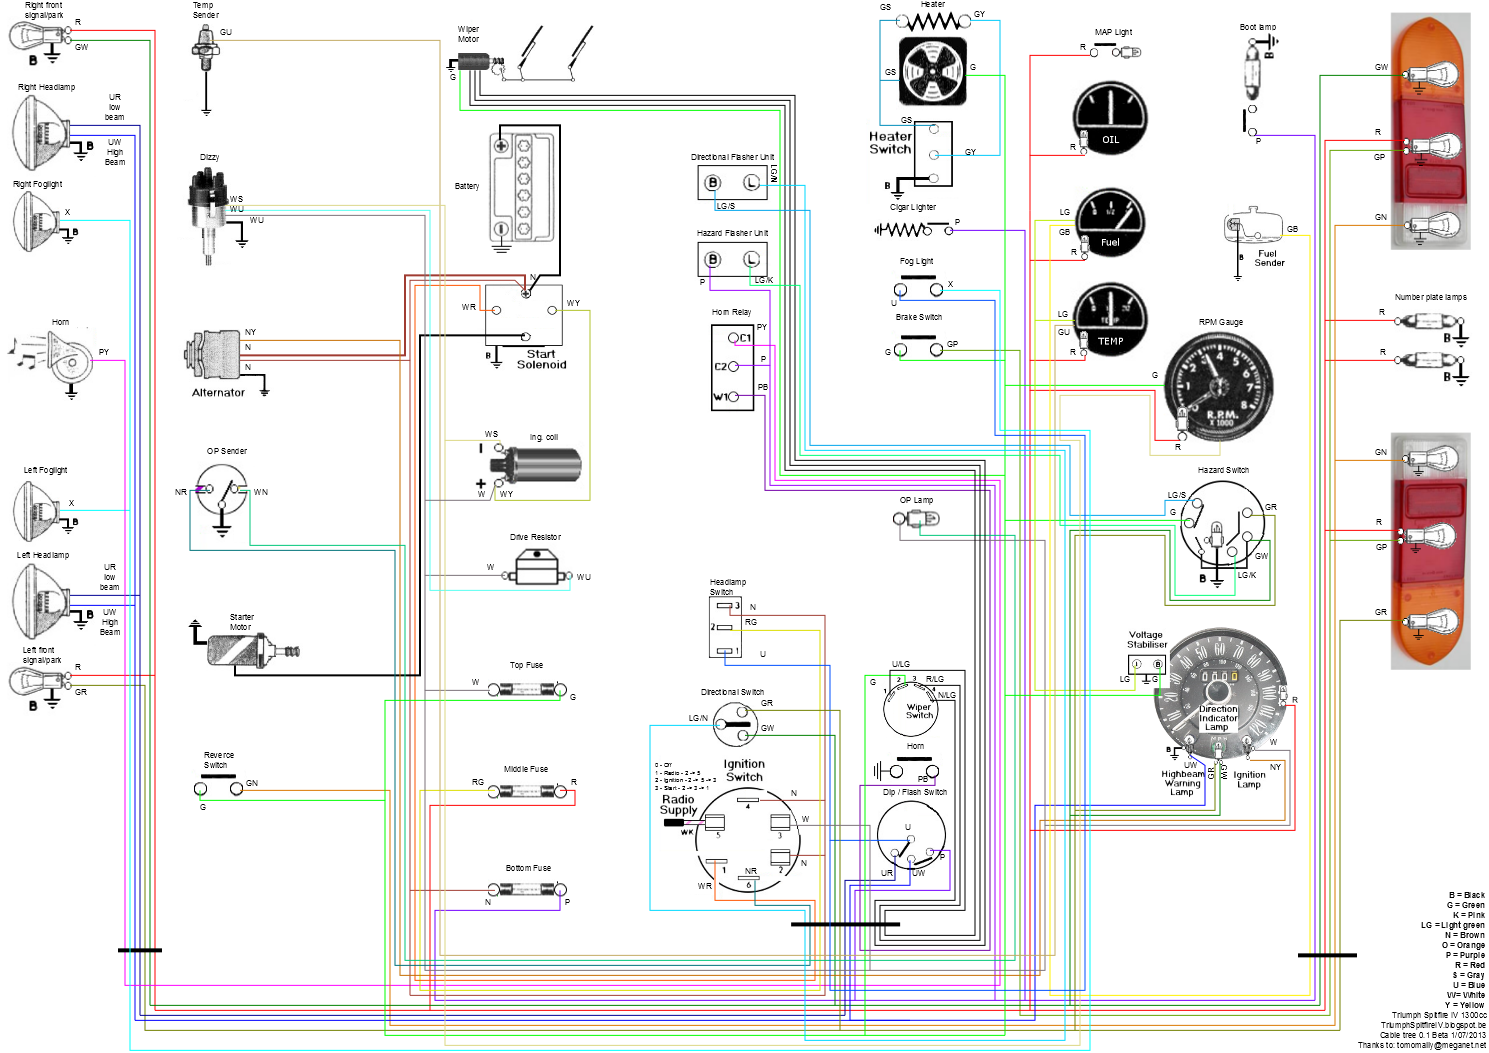 electrical schematic cable tree for spitfire iv using. Black Bedroom Furniture Sets. Home Design Ideas